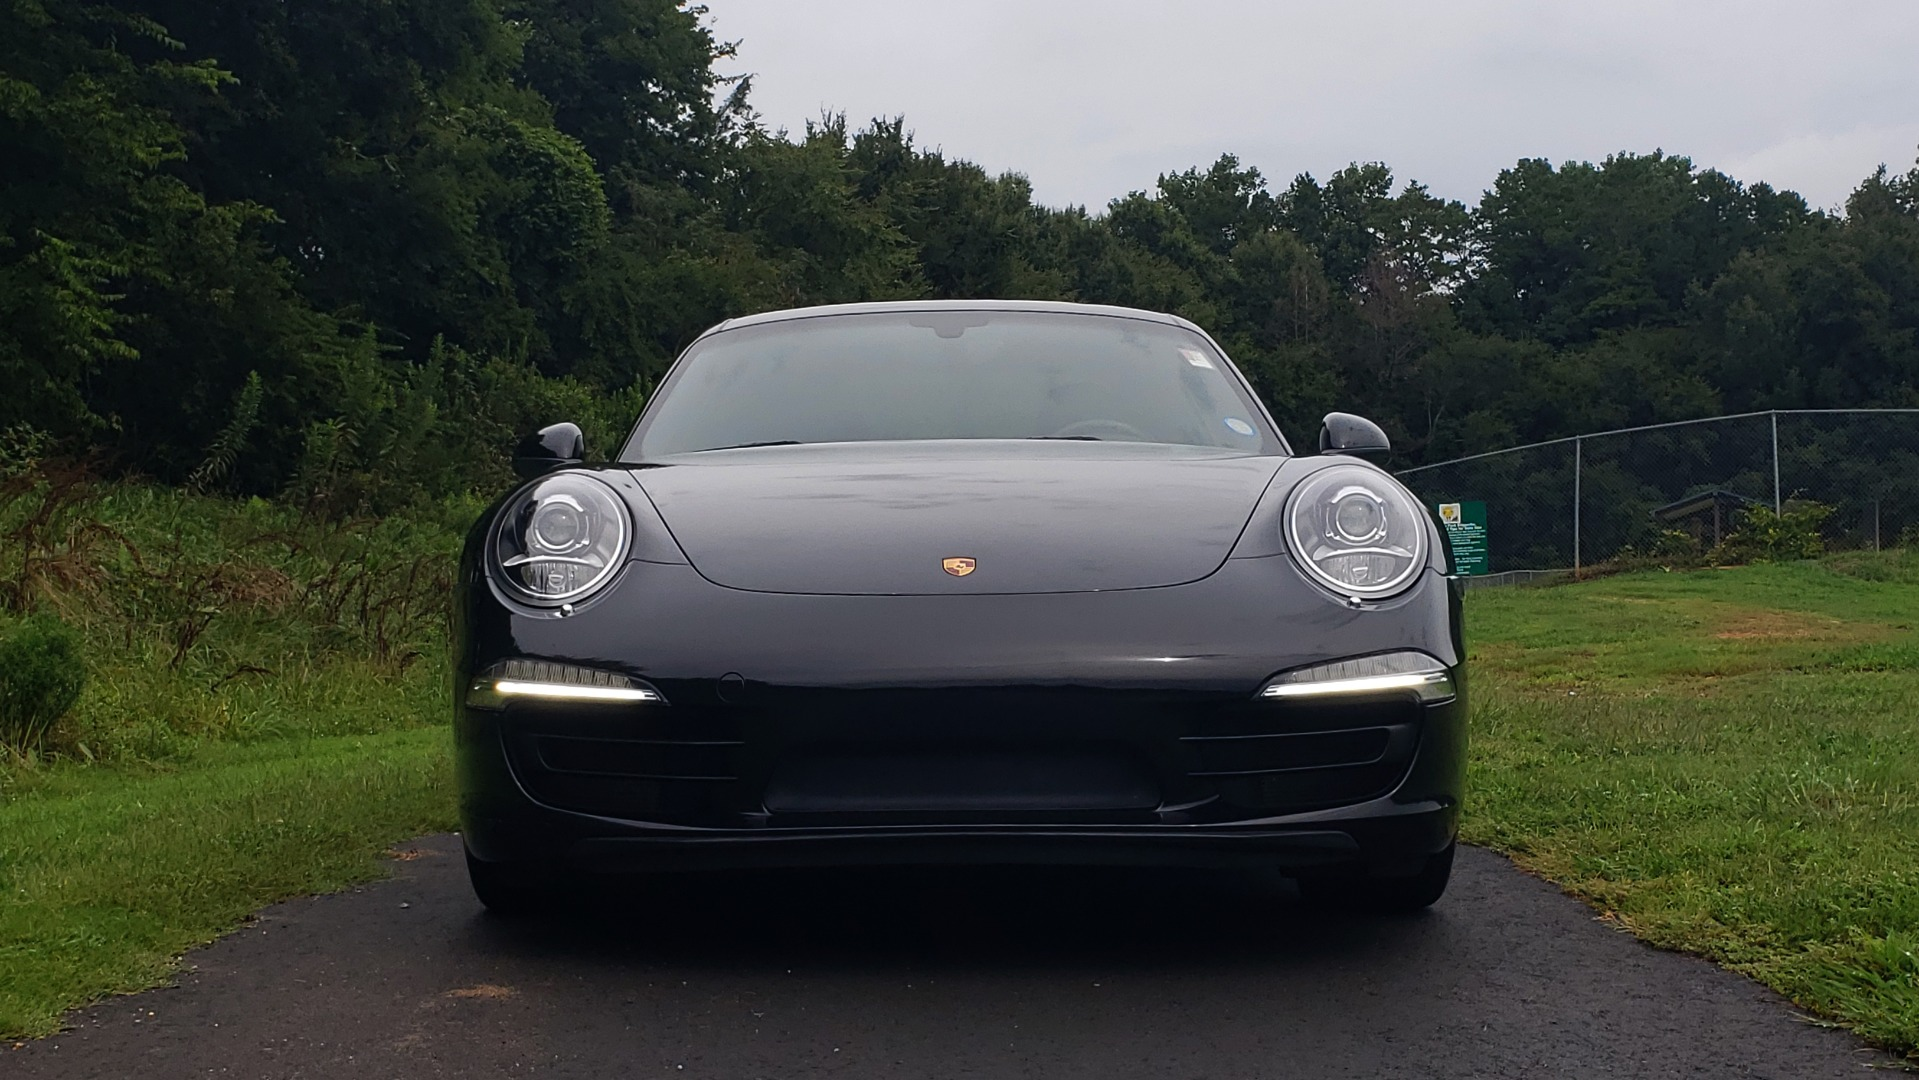 Used 2014 Porsche 911 CARRERA 4S / AWD / 3.8L / PDK / CHRONO / NAV / BOSE / SUNROOF for sale Sold at Formula Imports in Charlotte NC 28227 12